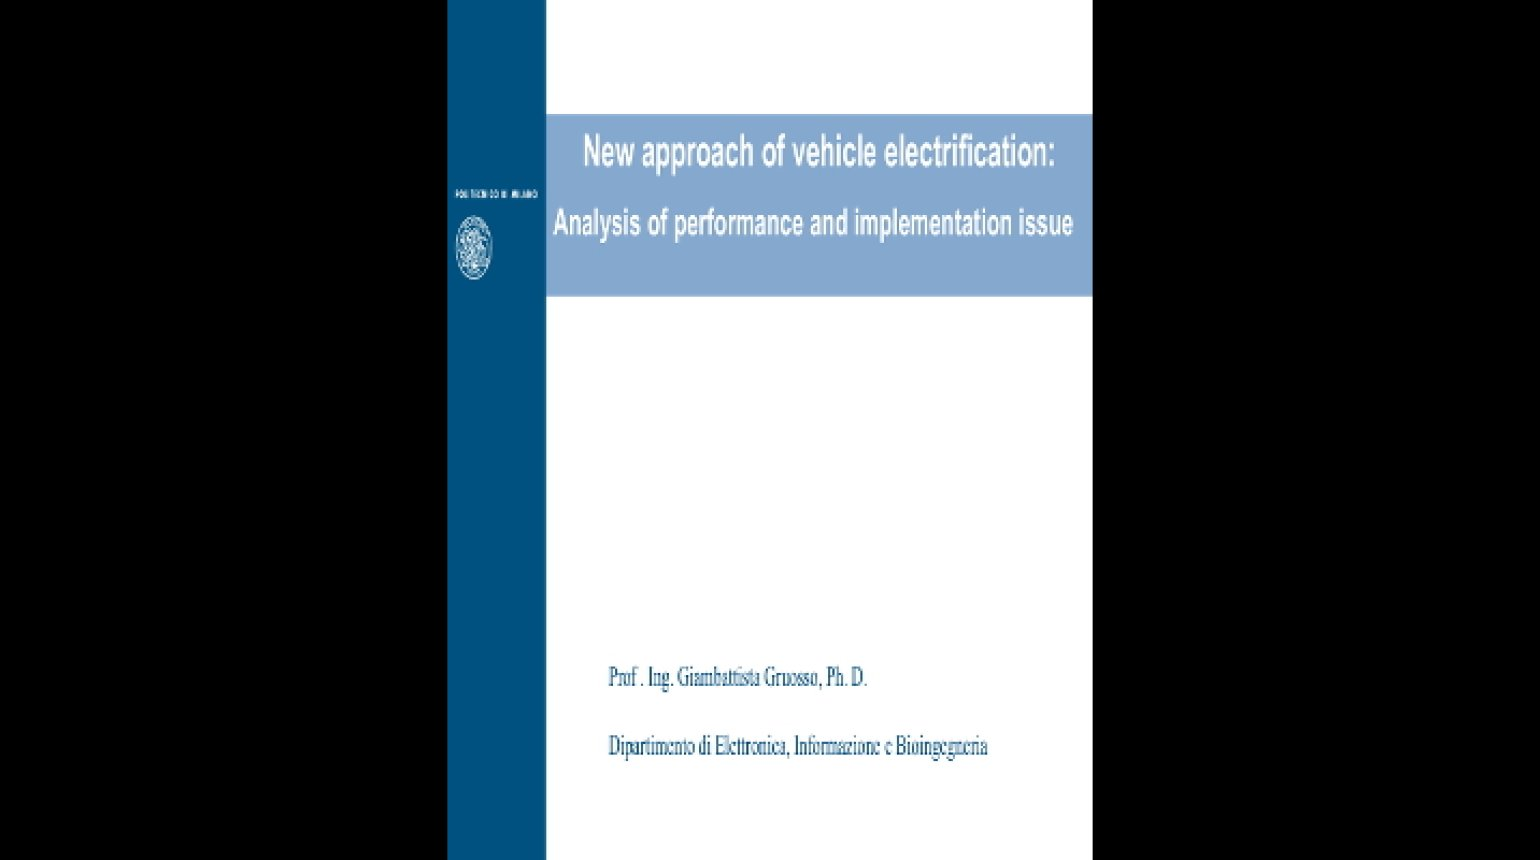 Video - New Approach of Vehicle Electrification: Analysis of Performance and Implementation Issue